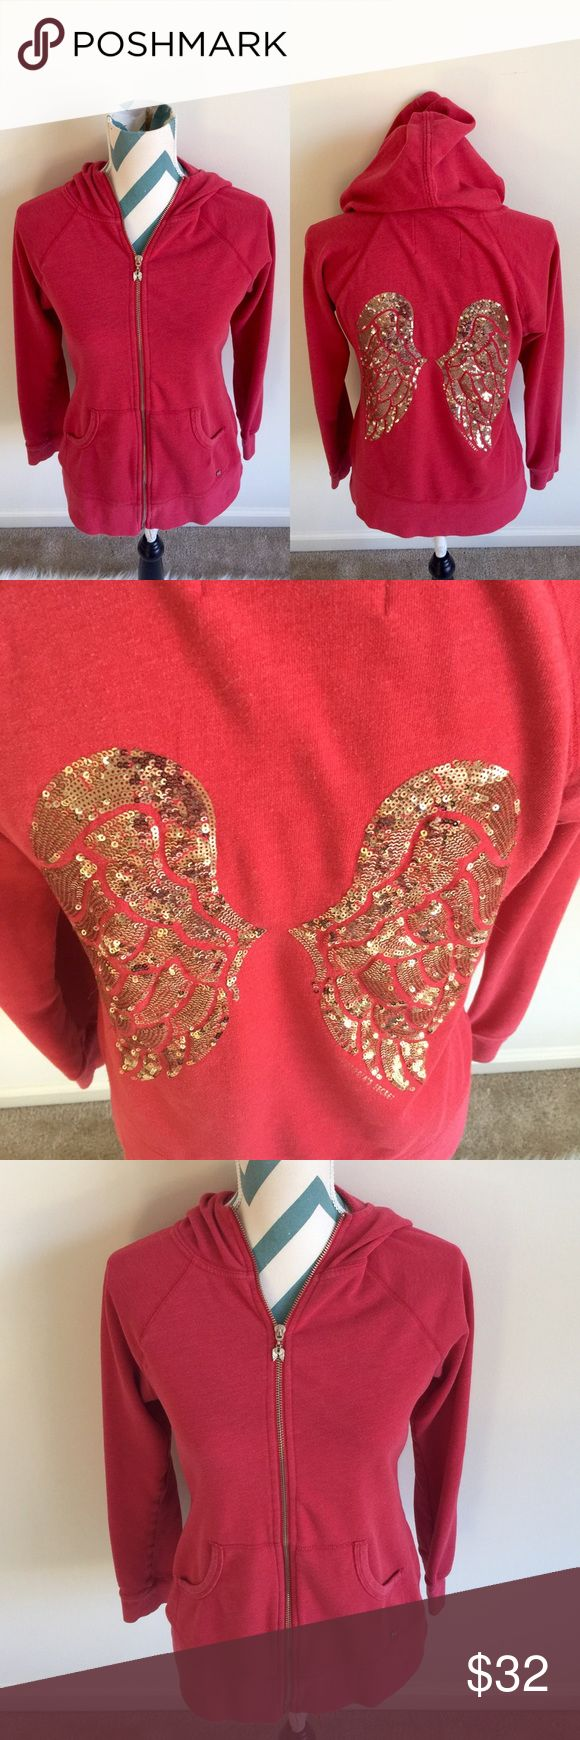 VS Angels Sweatshirt Beautiful red zip up sweatshirt with gold sequin angel wings on the back. Pockets in the front with angel wing zipper pull. No flaws! Victoria's Secret Tops Sweatshirts & Hoodies